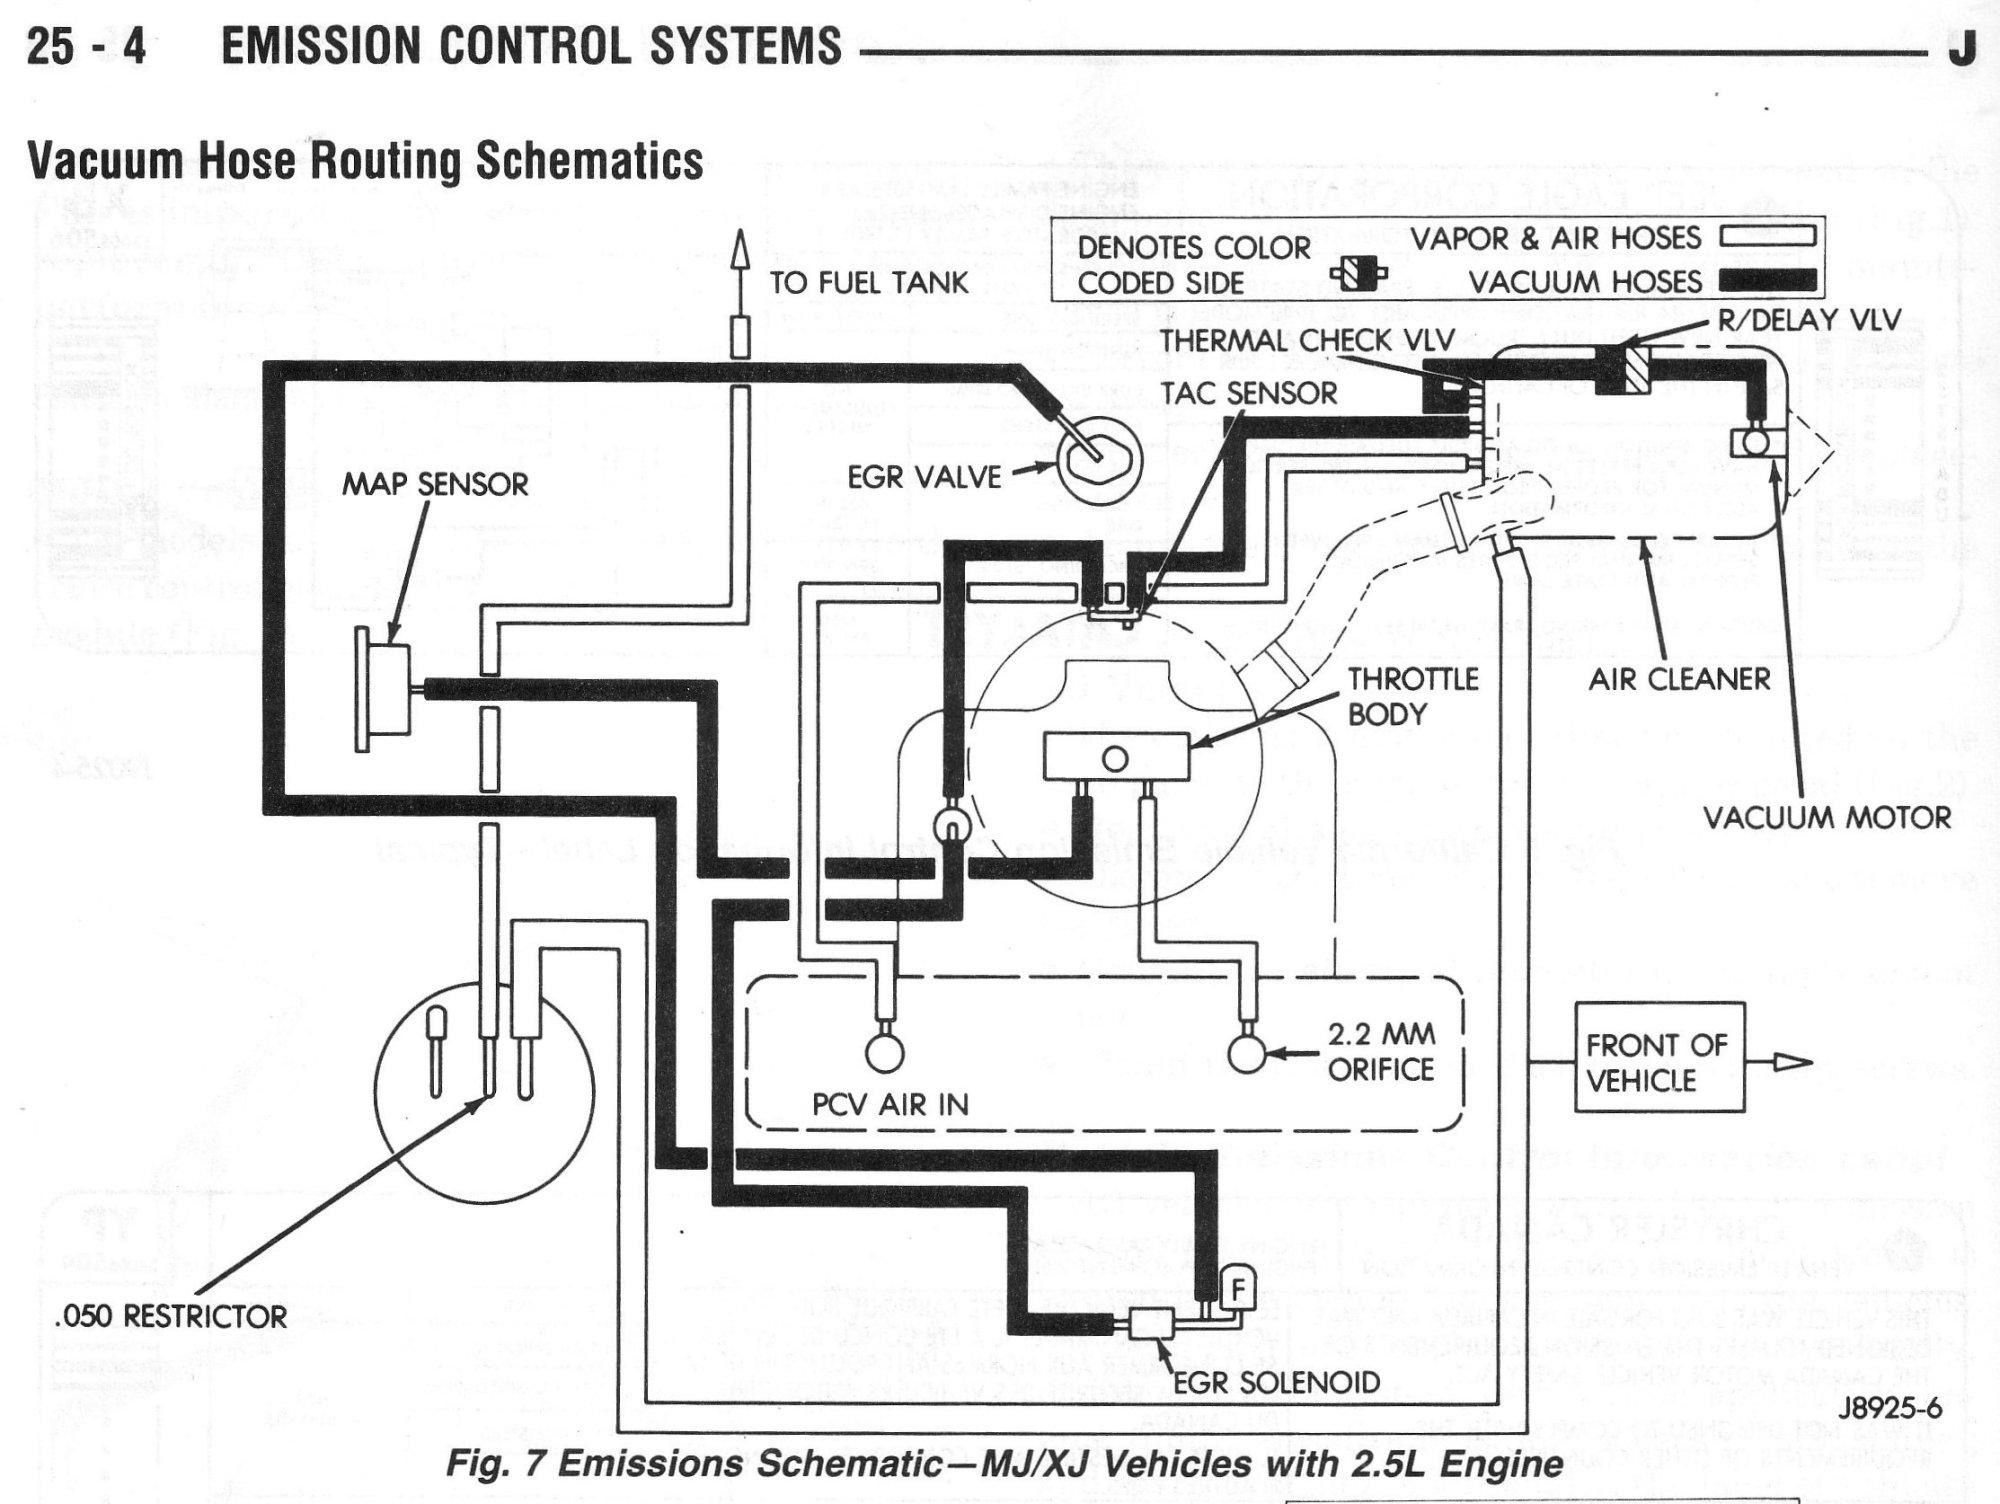 hight resolution of 99 jeep cherokee vacuum diagram wiring diagram new 1986 jeep comanche vacuum lines diagram